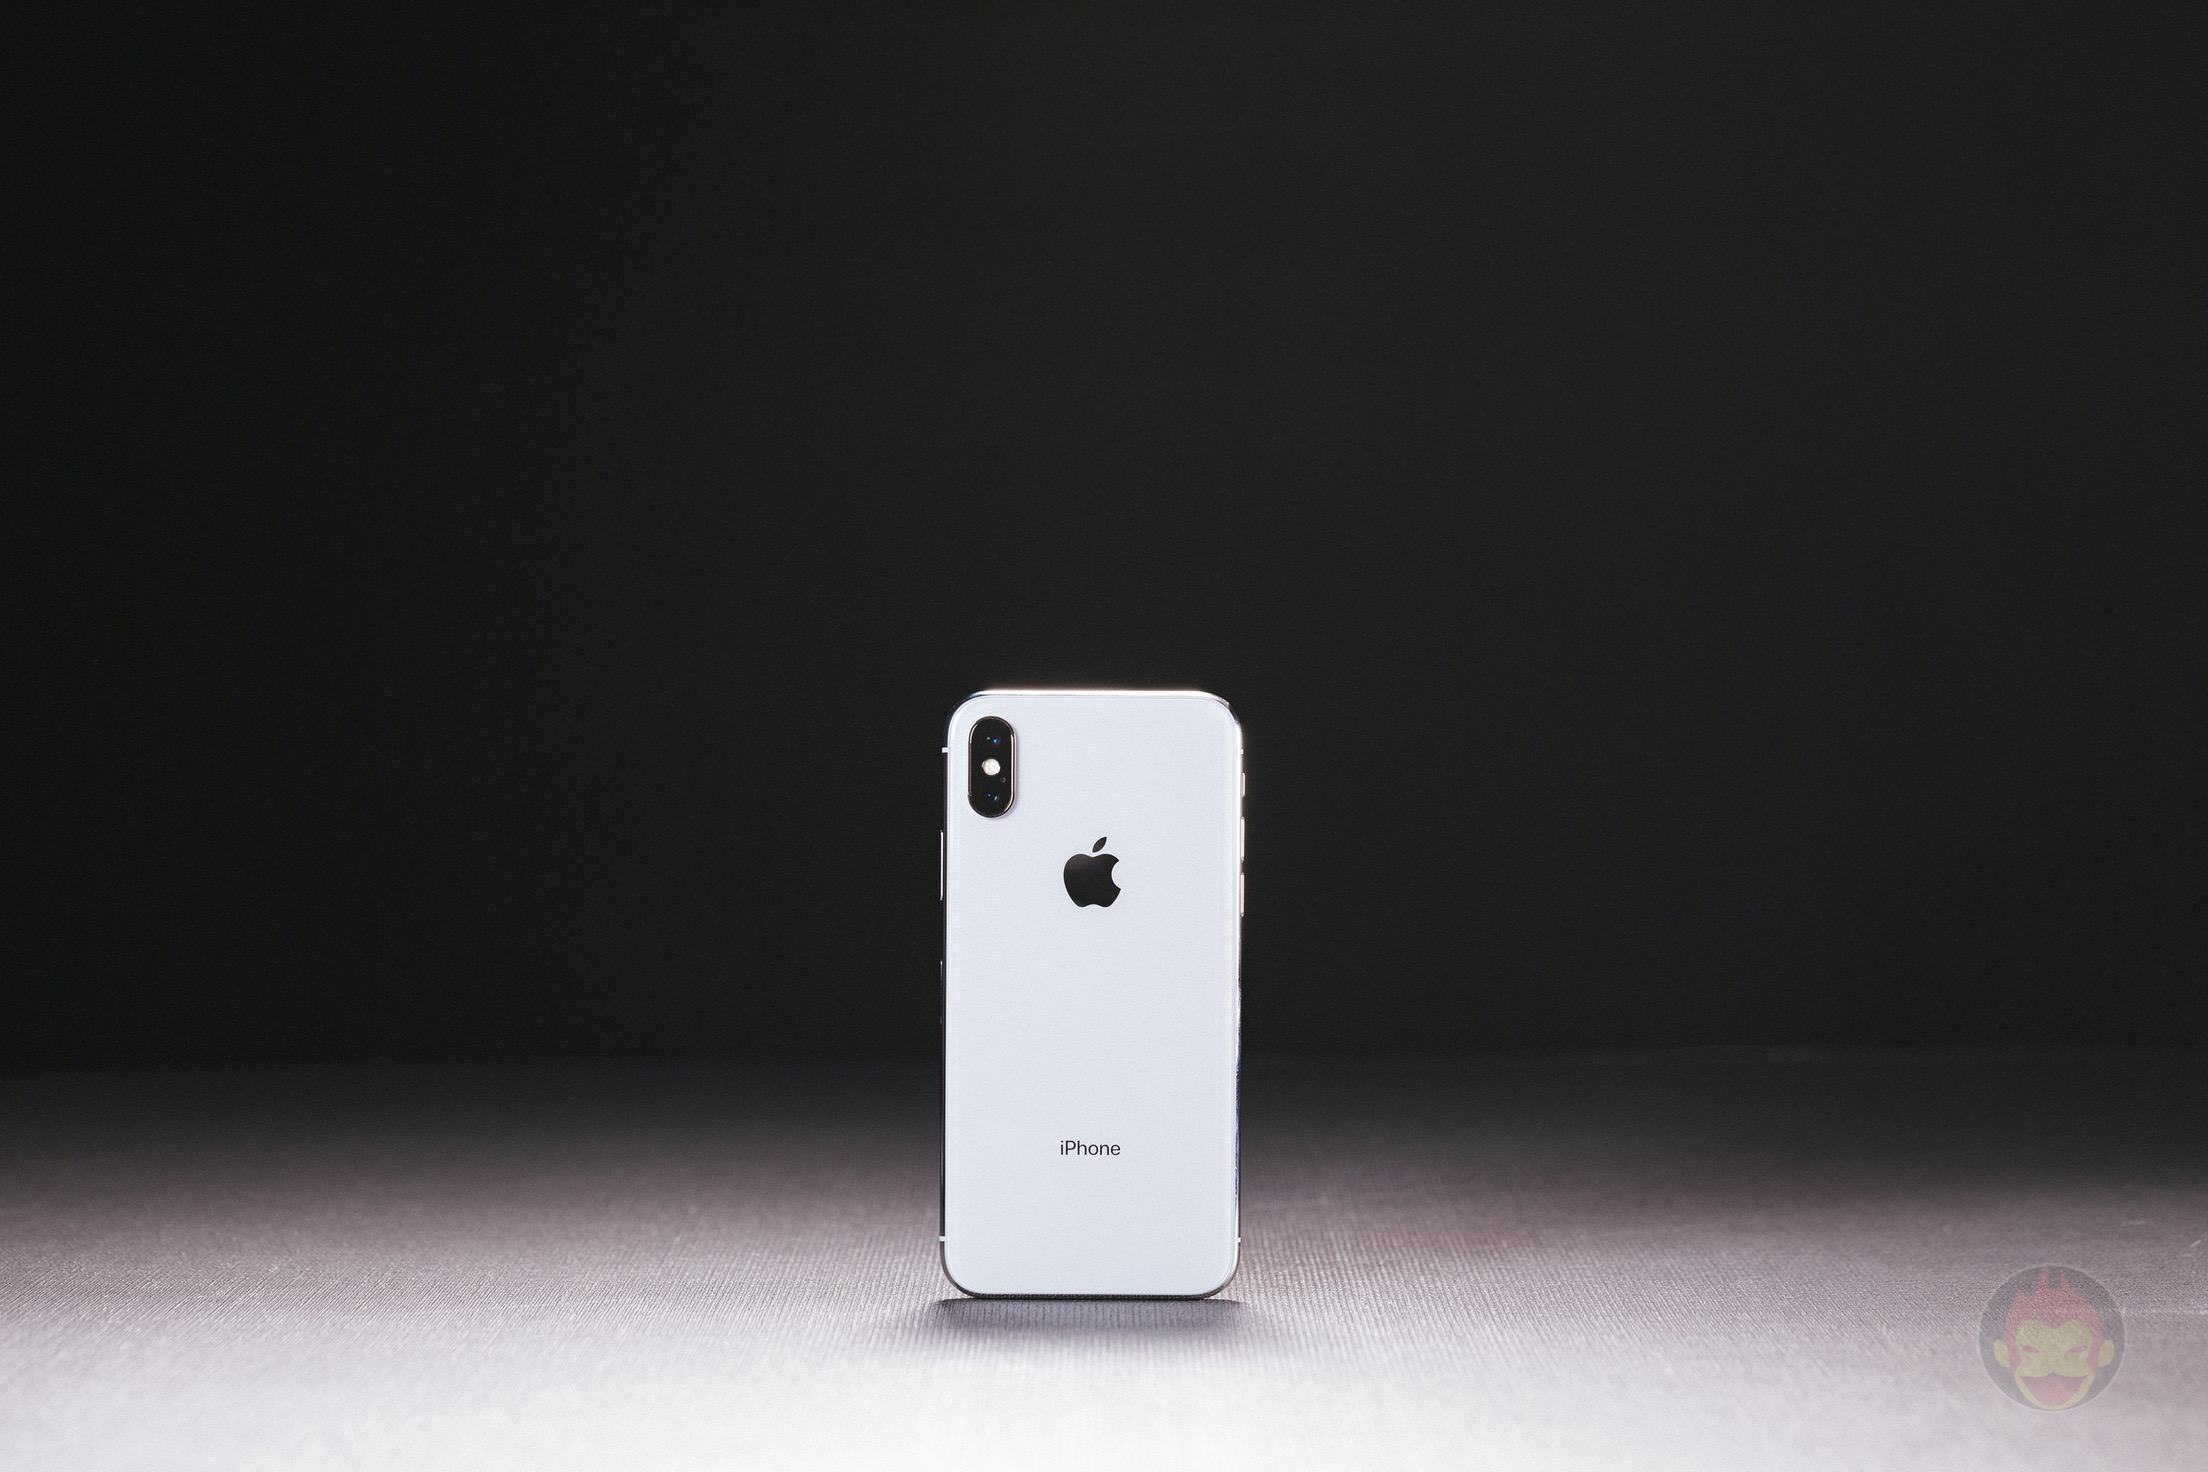 iPhone-X-Silver-Review-27.jpg